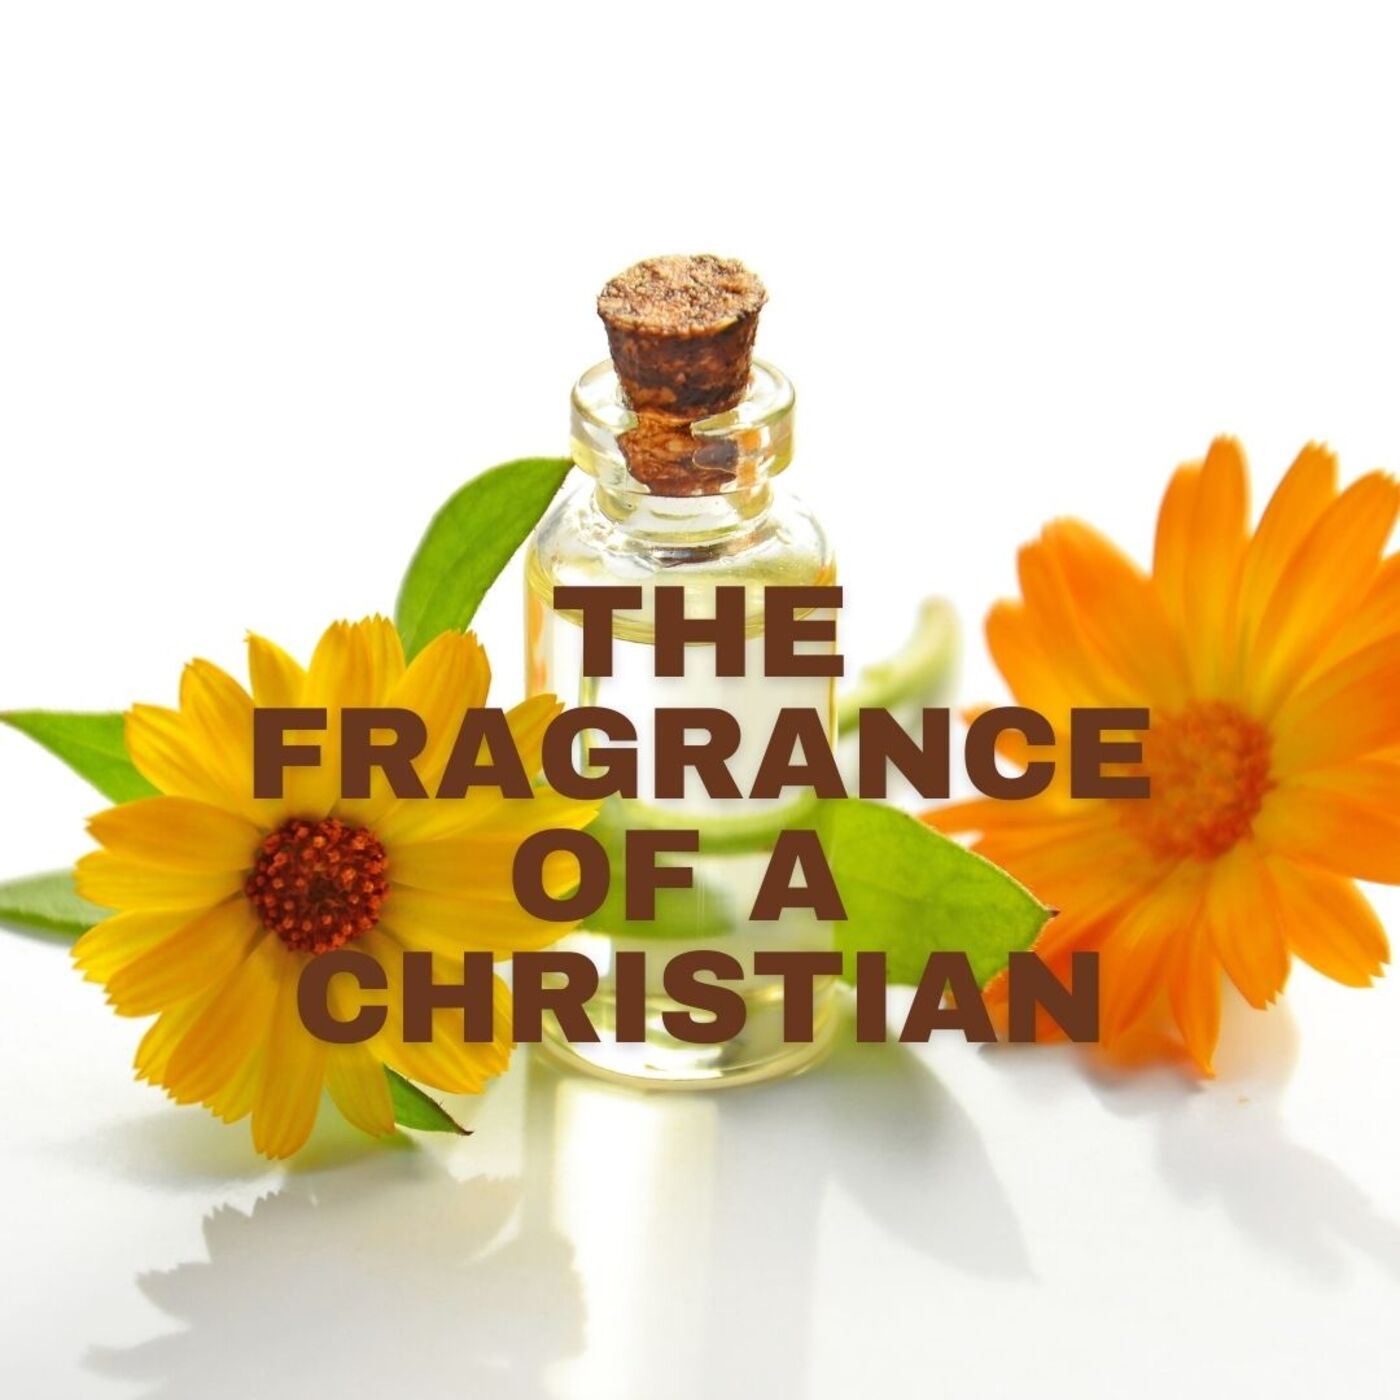 The Fragrance of A Christian